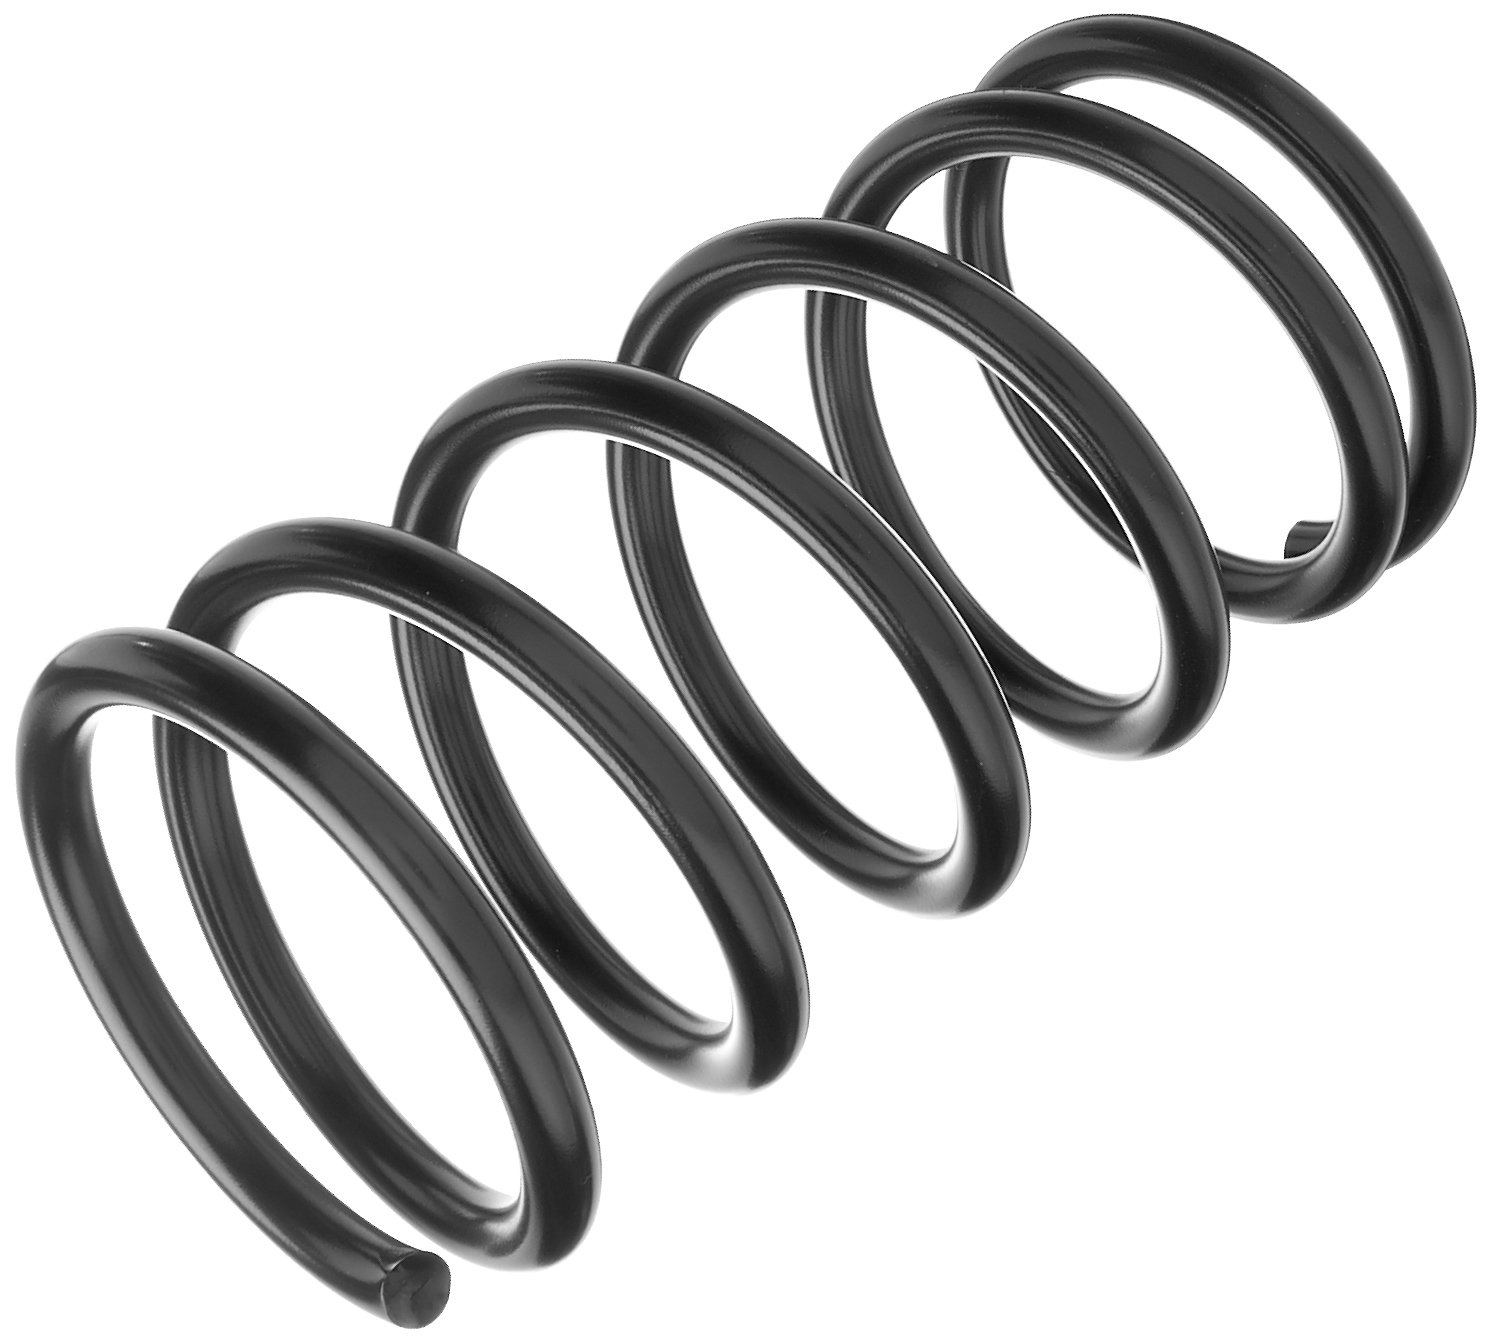 Kawasaki 92144-1919 Front Heavy Load Spring, Pack of 2 by Kawasaki